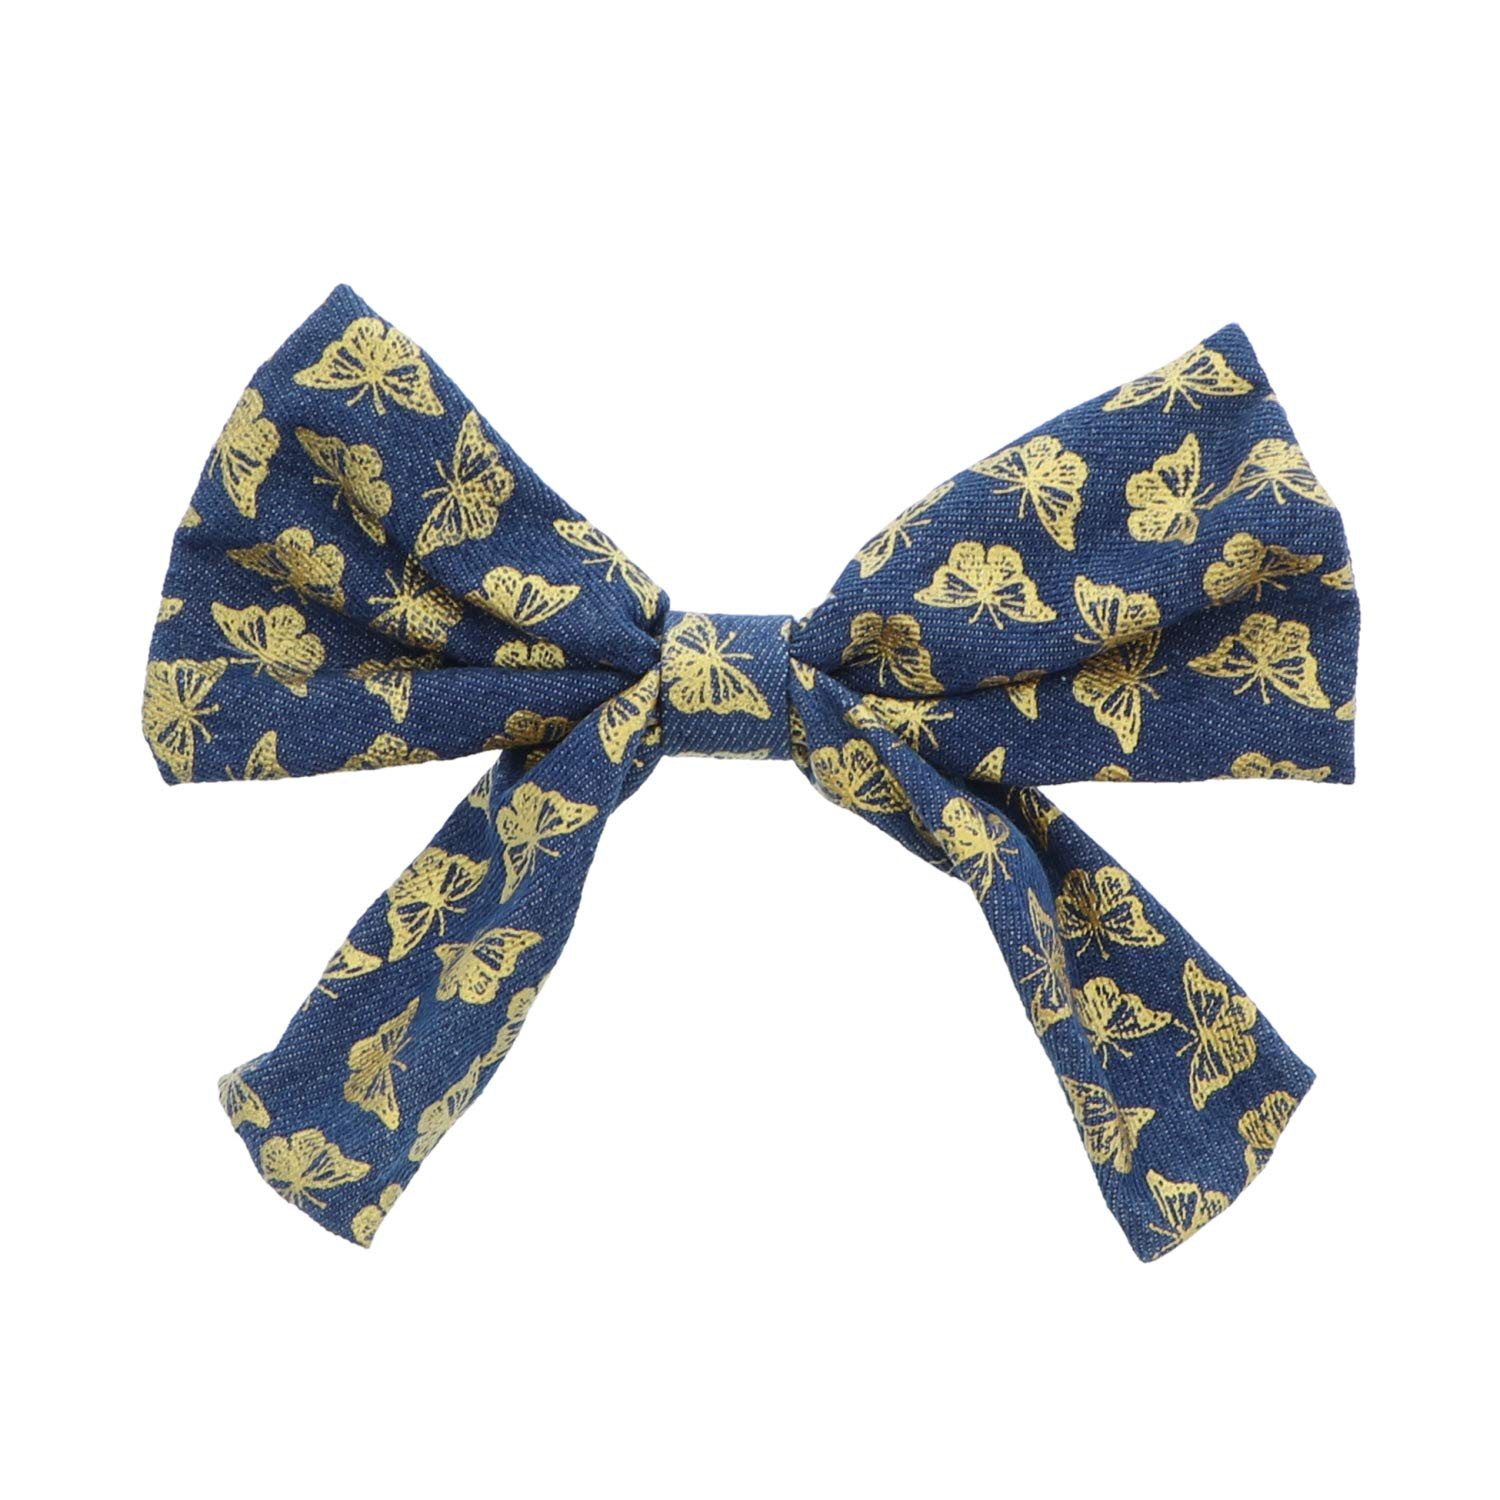 7.5 inch Bow With Butterflies Hair Clip For Woman And Girls - Denim